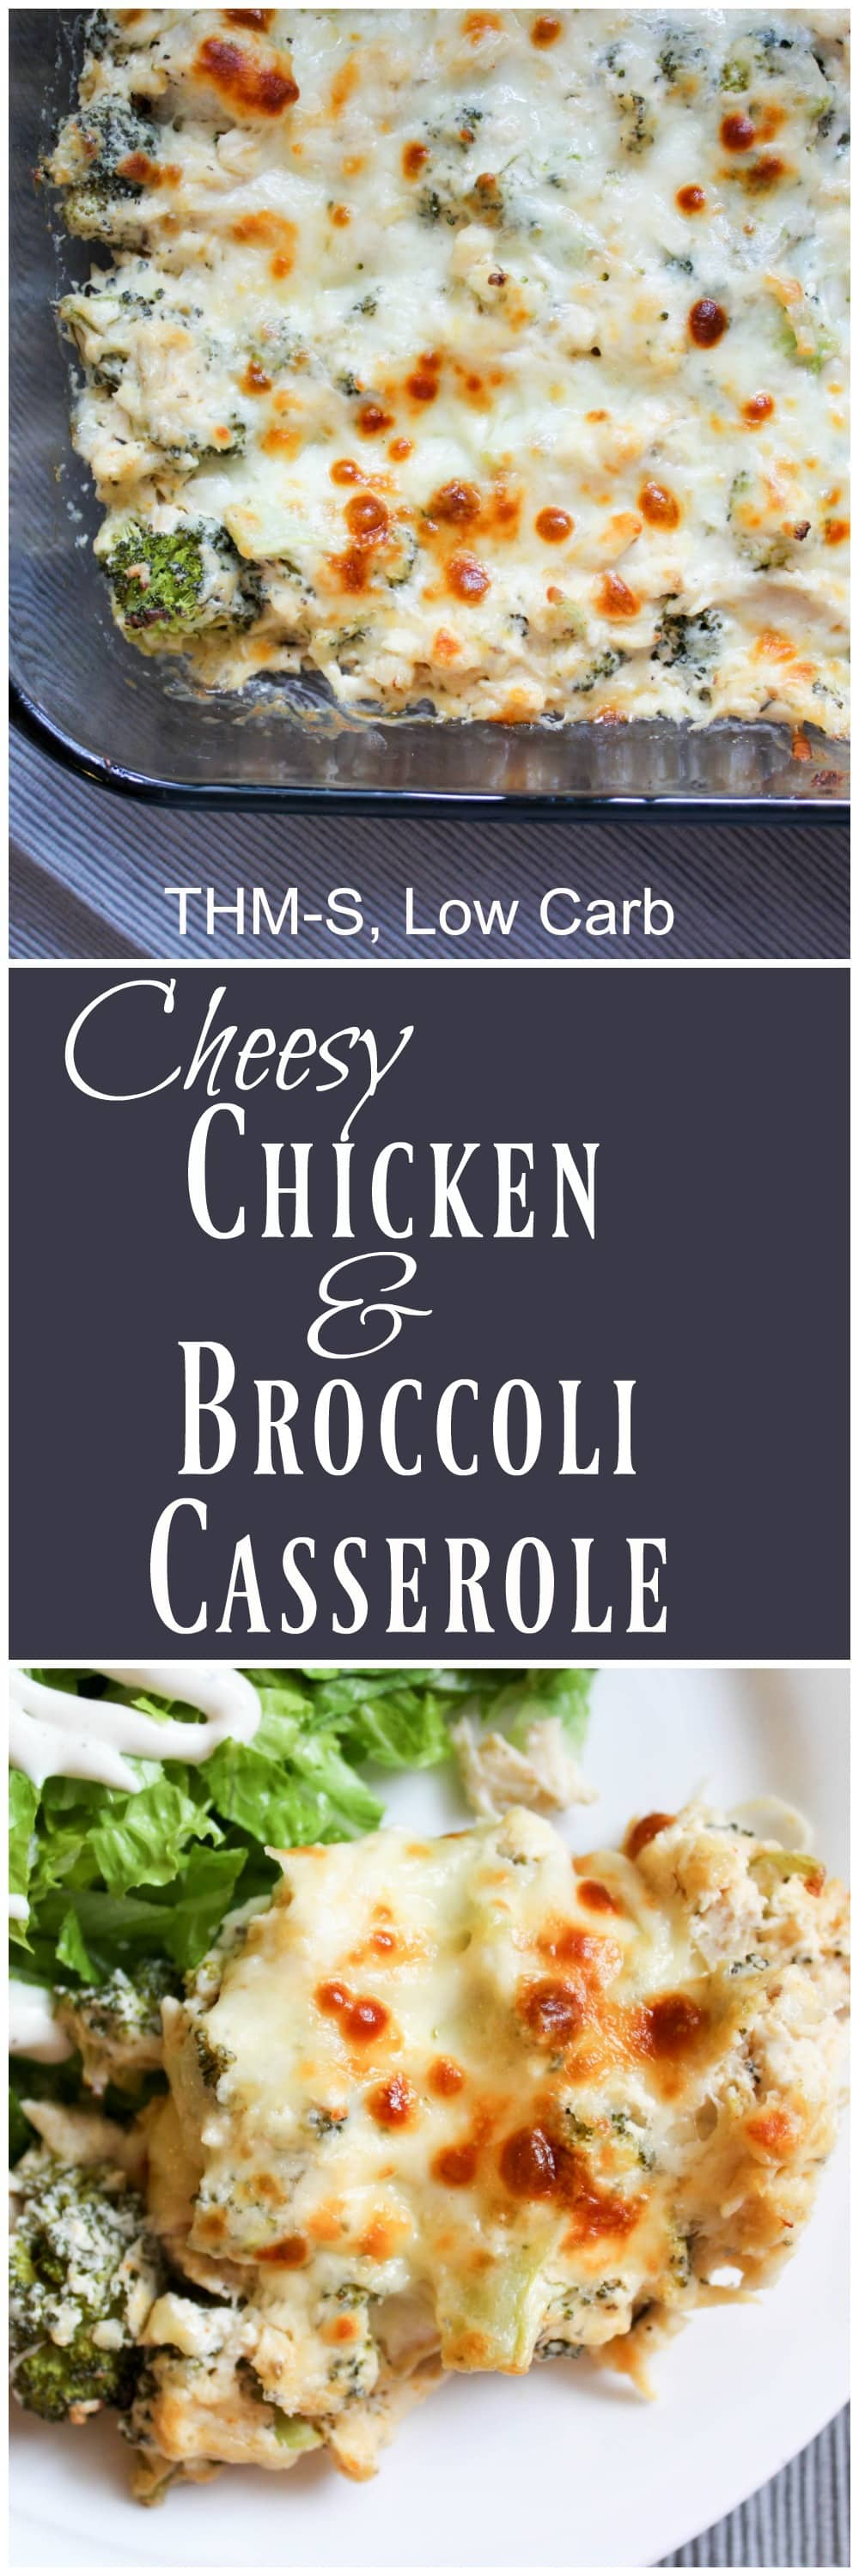 Cheesy Chicken and Broccoli Casserole (THM-S, Low Carb)